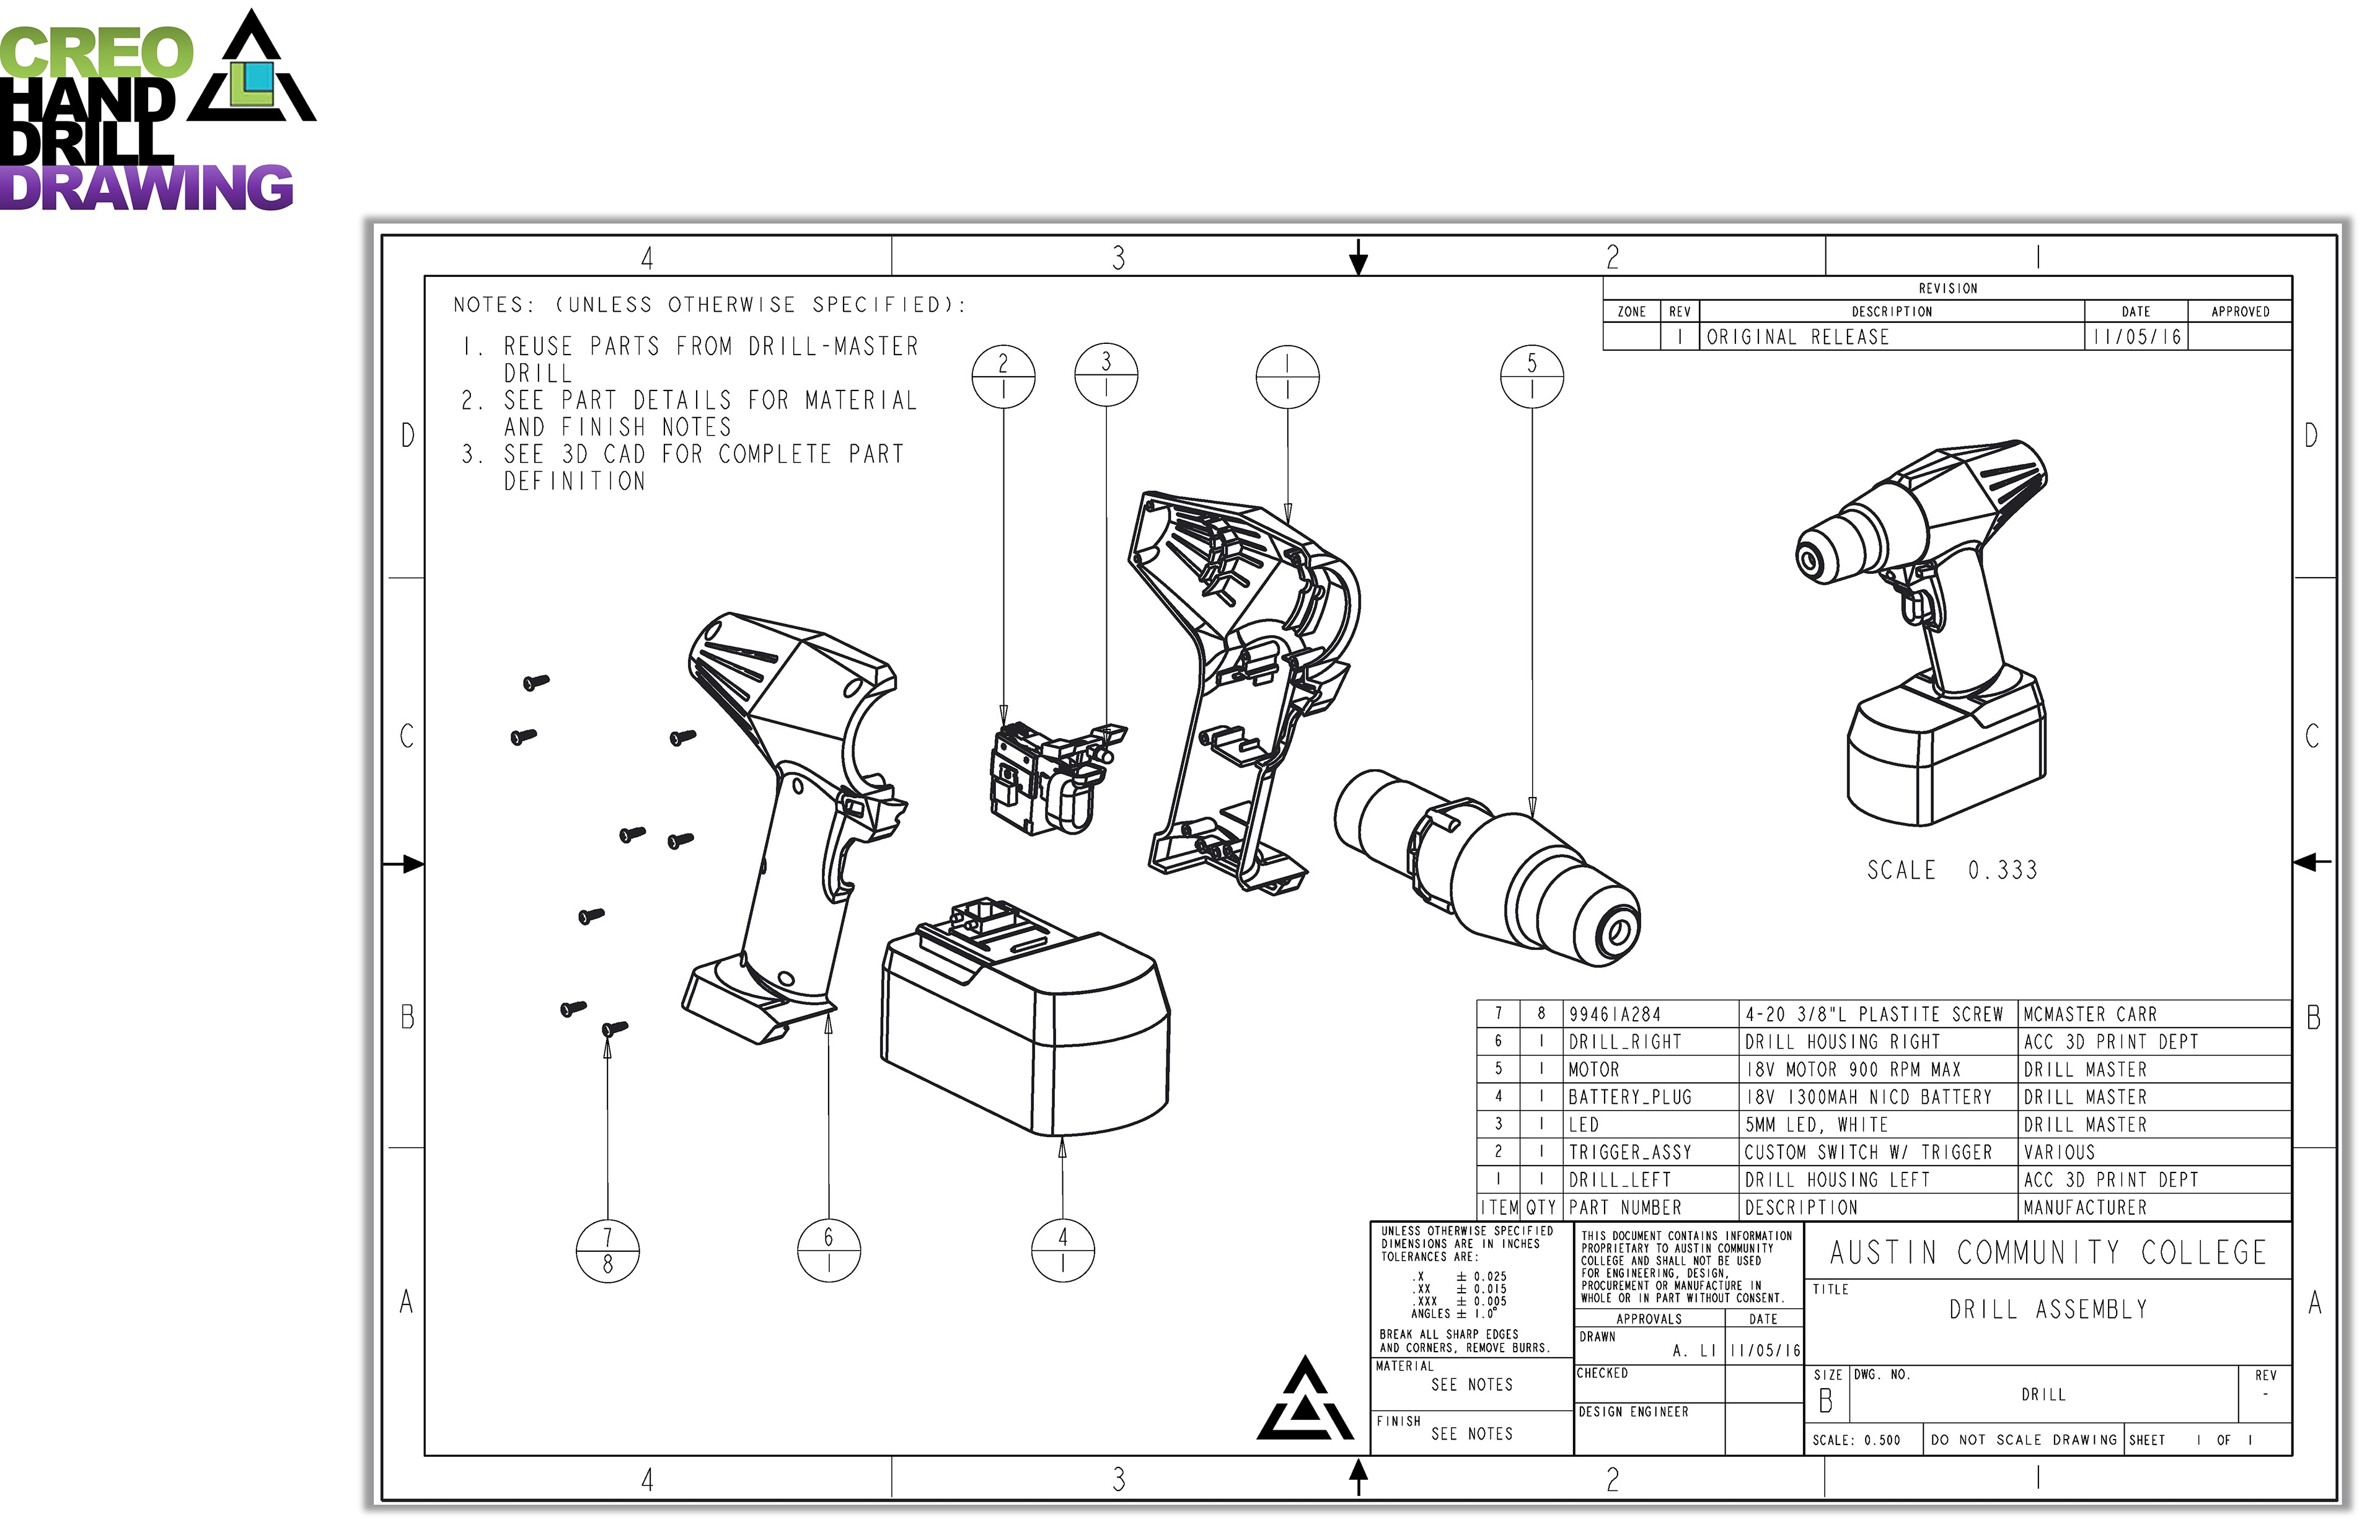 Mechanical Drafting And Design Portfolio On Behance Engineer Scale Diagram